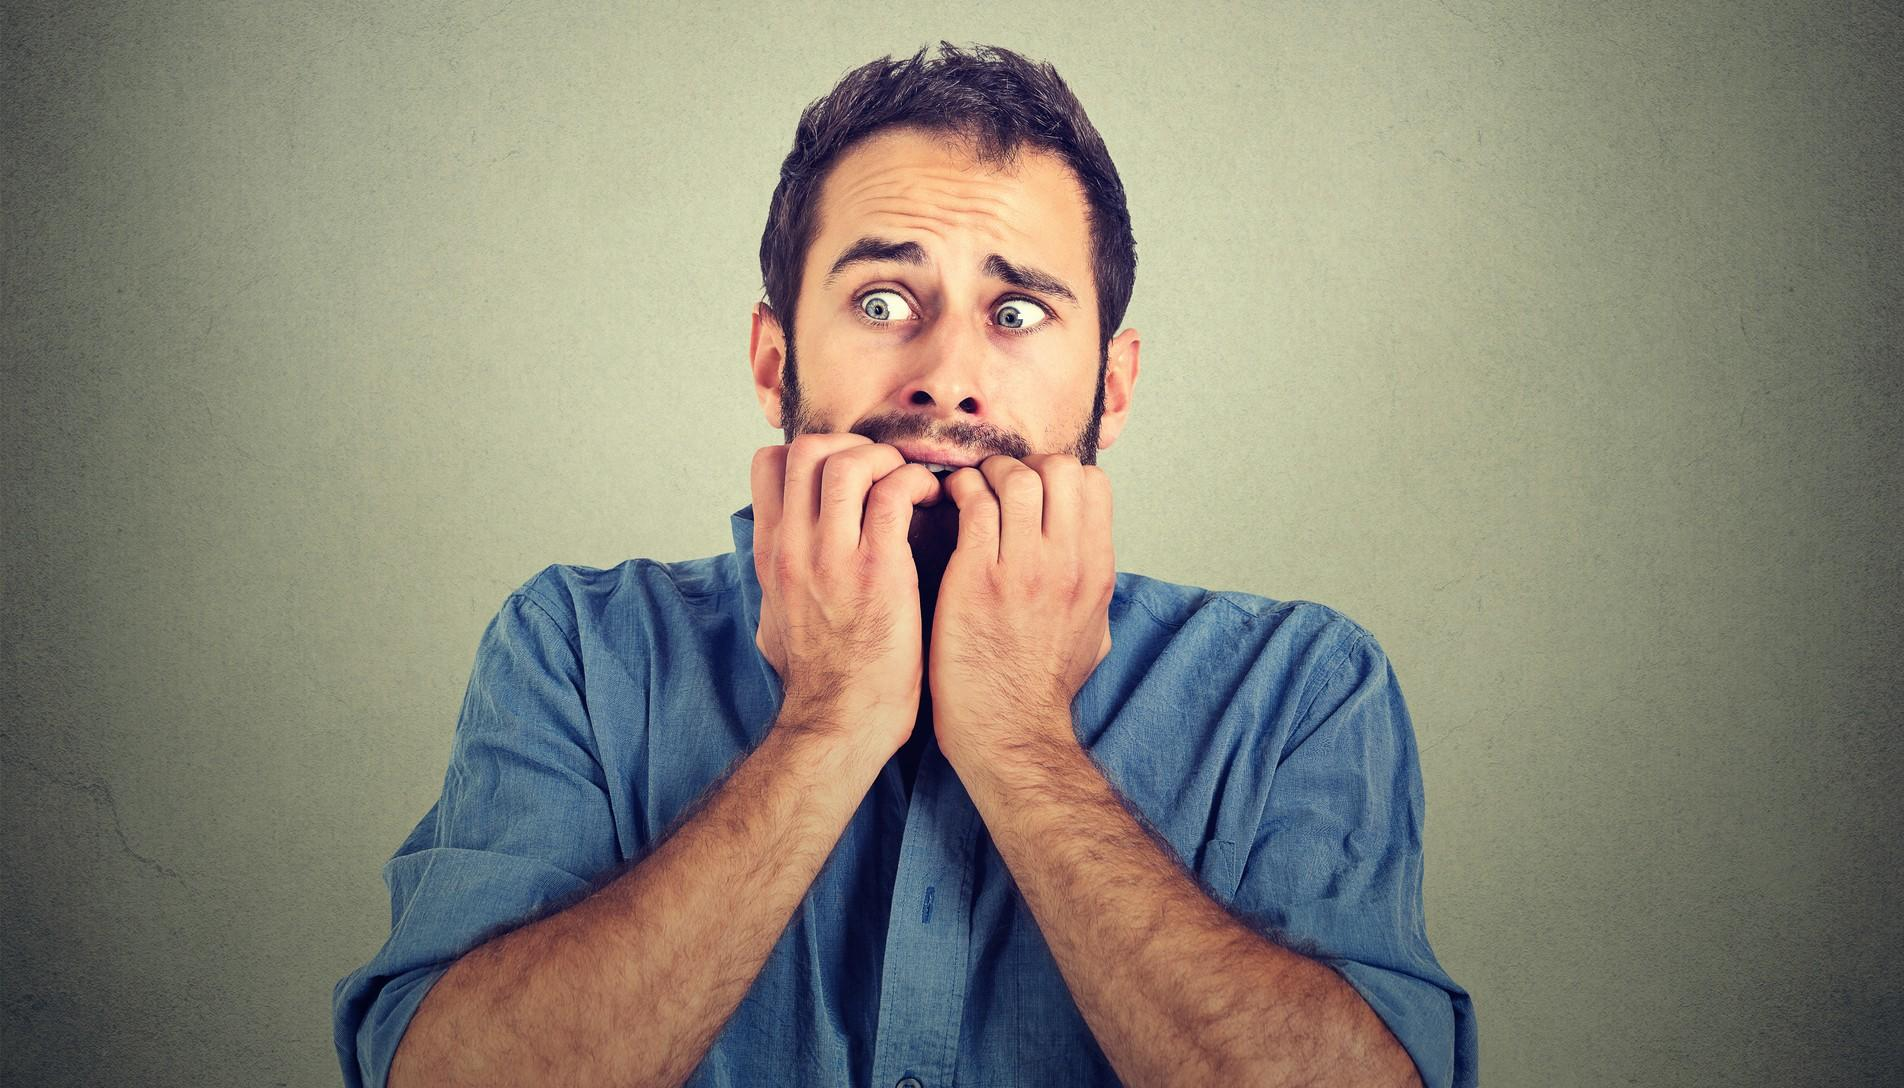 Portrait anxious young man biting his nails fingers freaking out